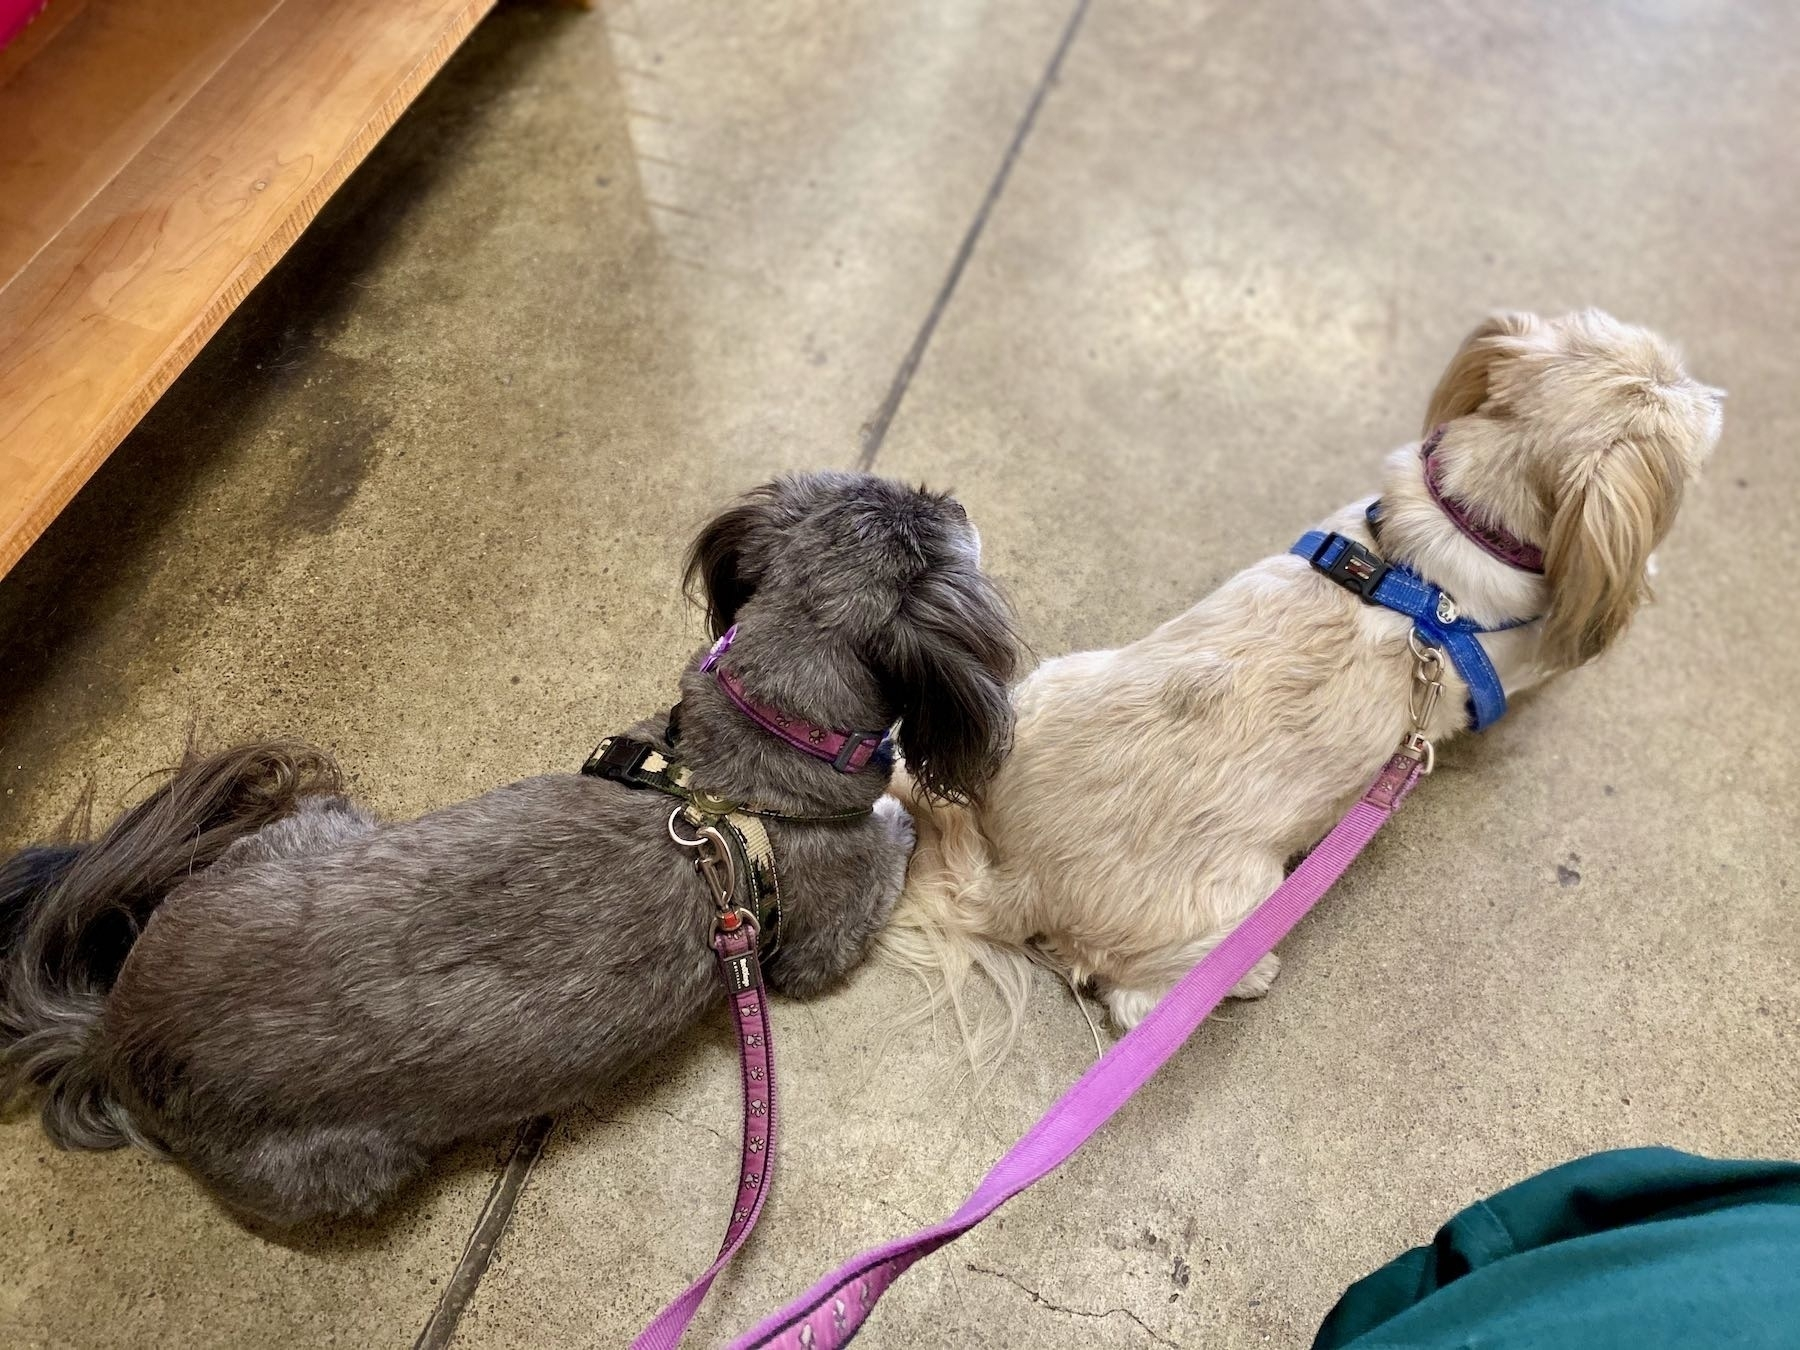 Top down view of two small dogs lying on a concrete floor.